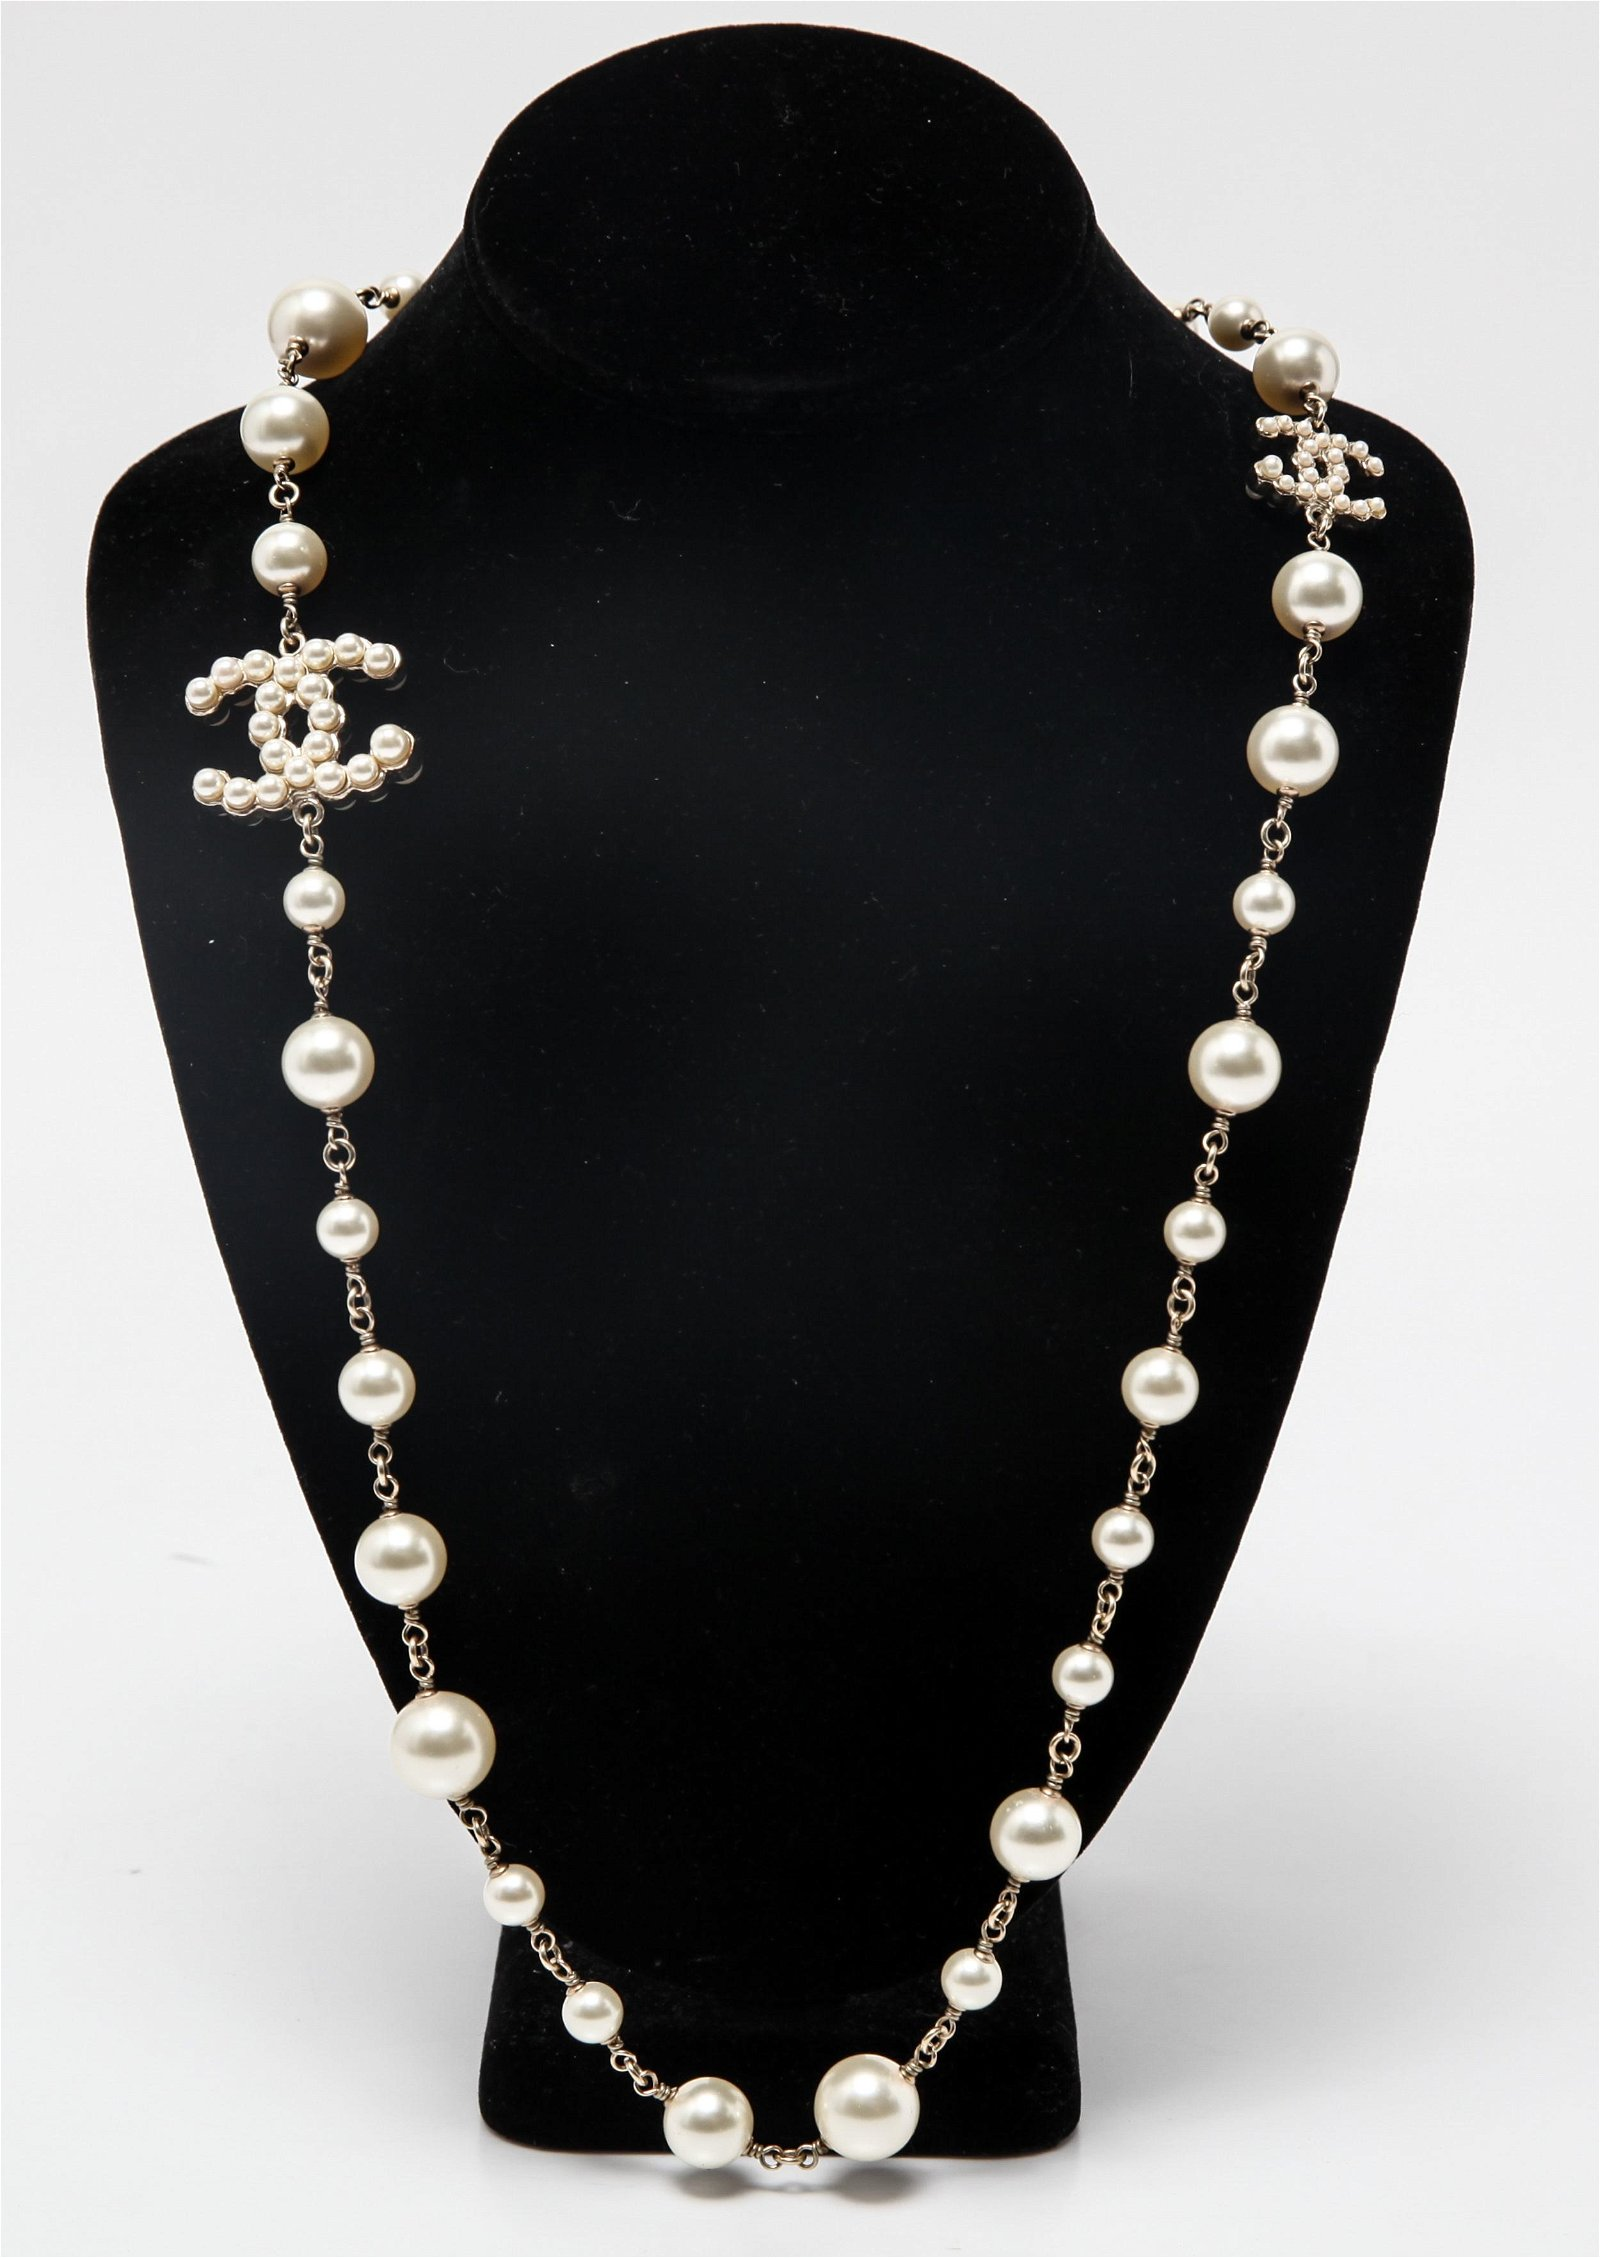 Chanel Faux-Pearls Costume Linked Necklace